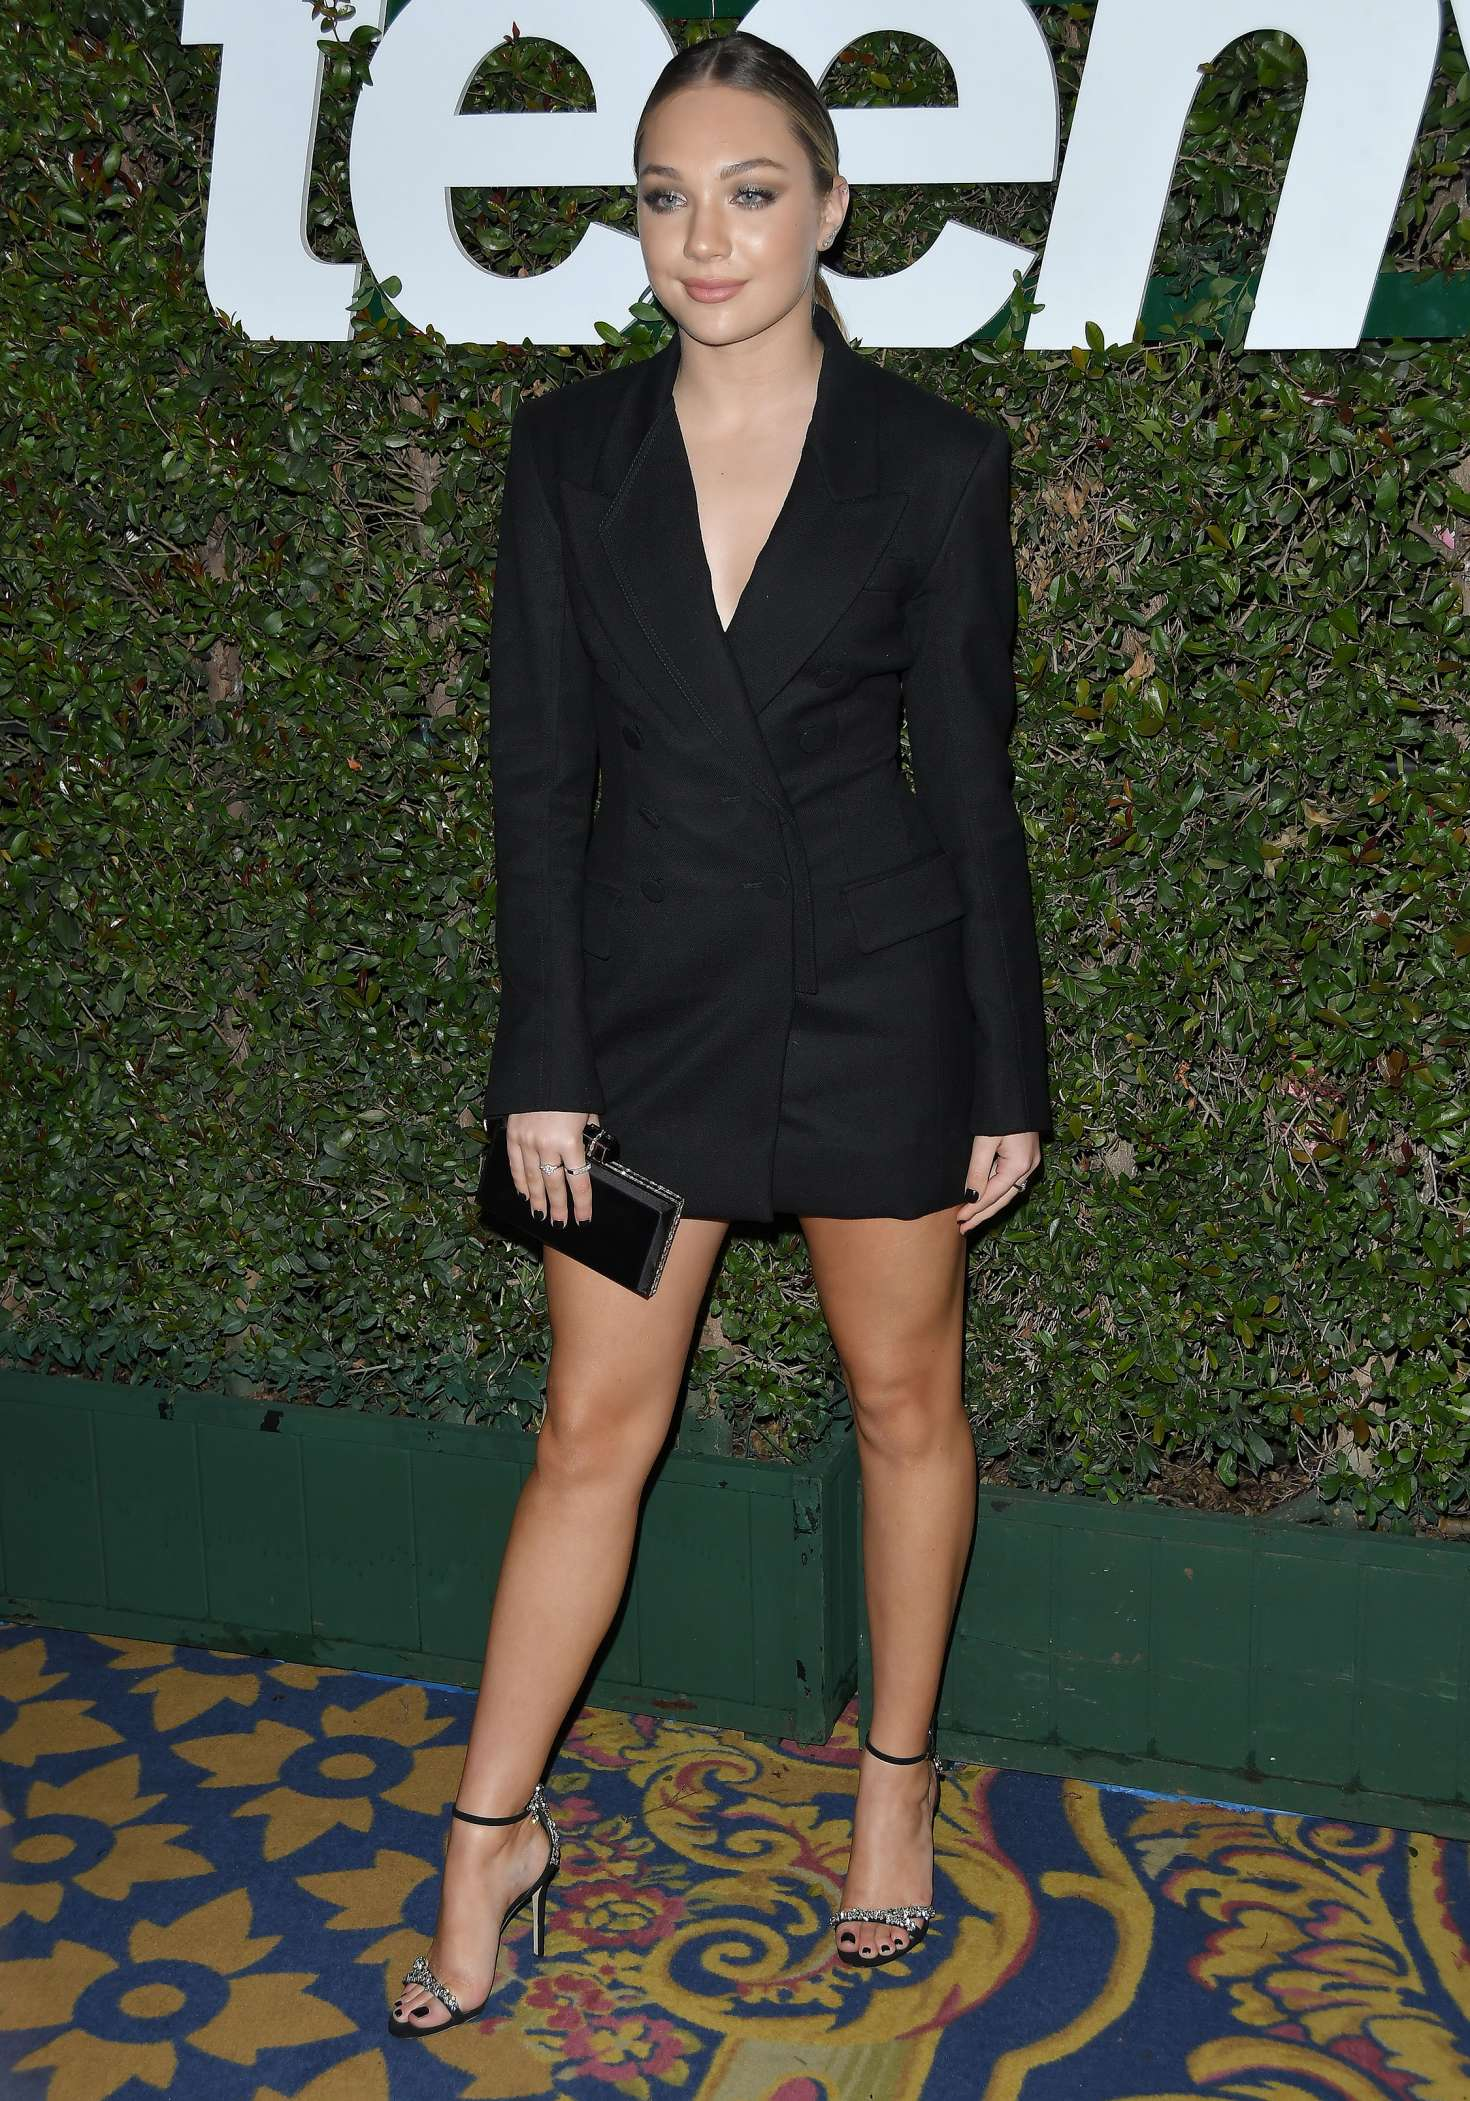 Maddie Ziegler 2019 : Maddie Ziegler: Teen Vogues 2019 Young Hollywood Party -02